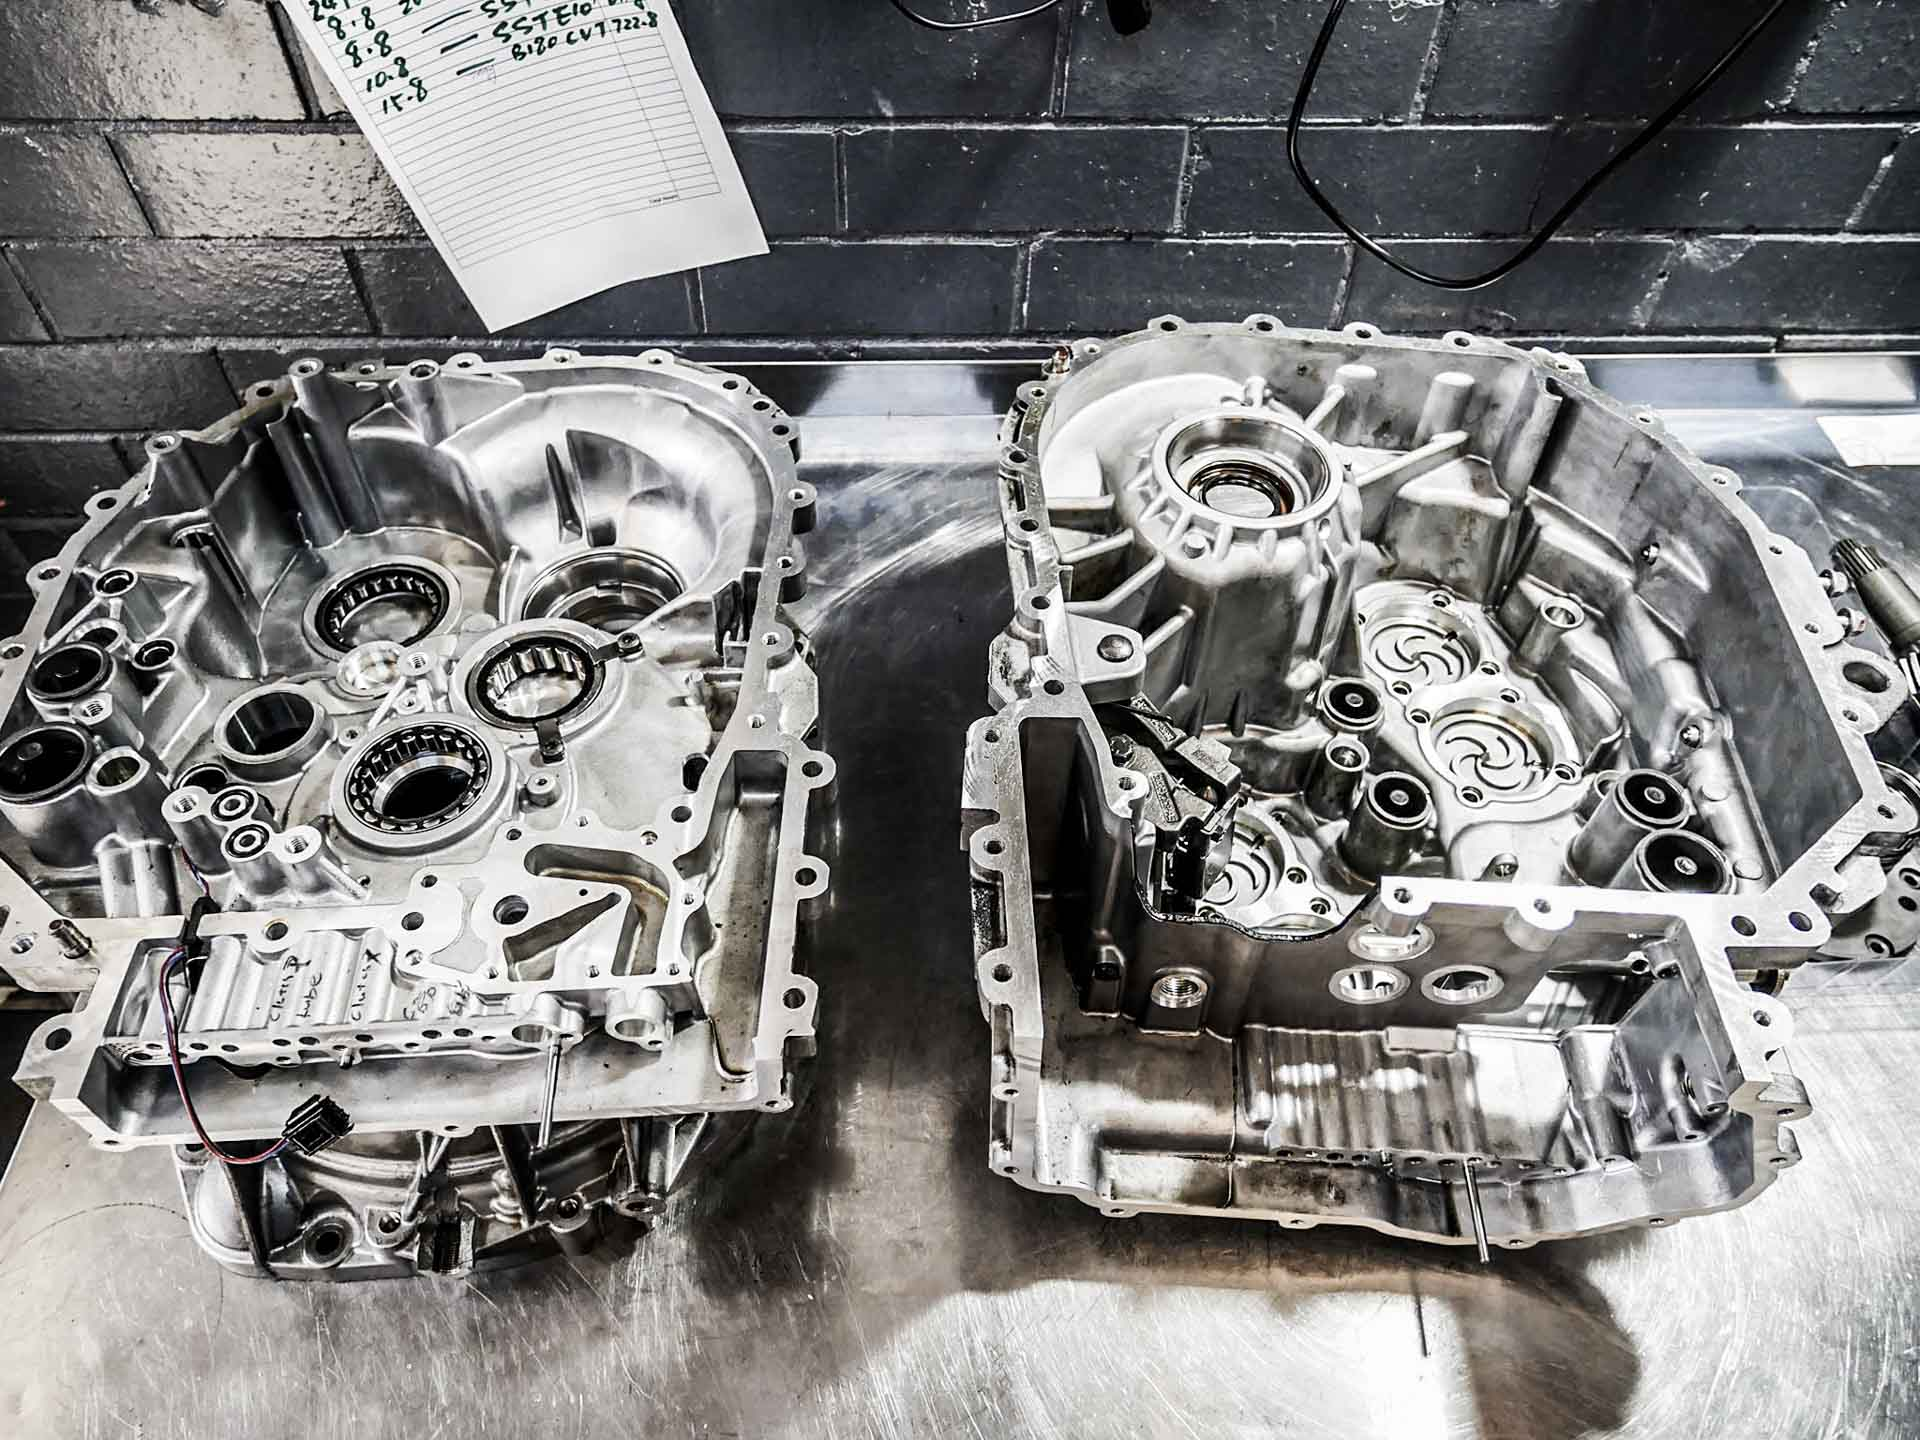 EVO X / Ralliart SST service & repair 5 EVO X / Ralliart SST service & repair As many Ralliart Lancer and EVO X owners have already experienced, the SST has had an enormous amount of issues as they were Getrag's first attempt at a twin clutch transmission unit.